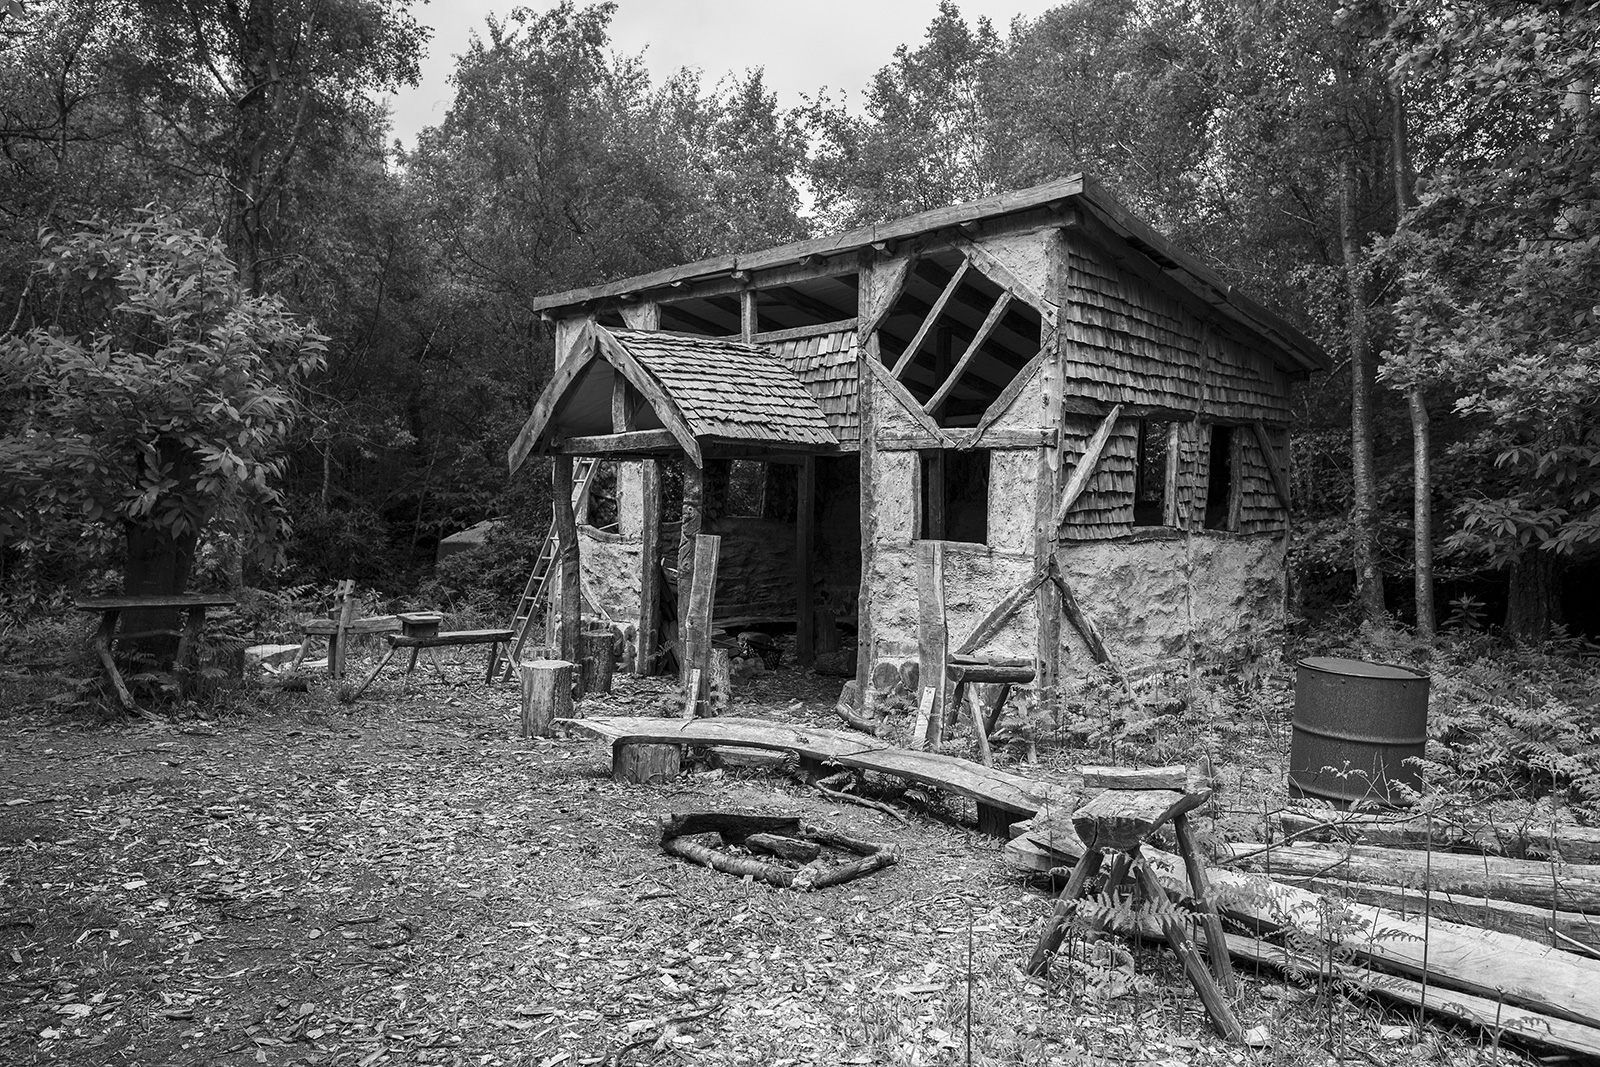 Timber framed cabin with wooden shingles and wattle and daub walls in Birch and Chestnut woodland, rural arboriculture photograph Ashdown Forest West Sussex UK ©P. Maton 2019 eyeteeth.net